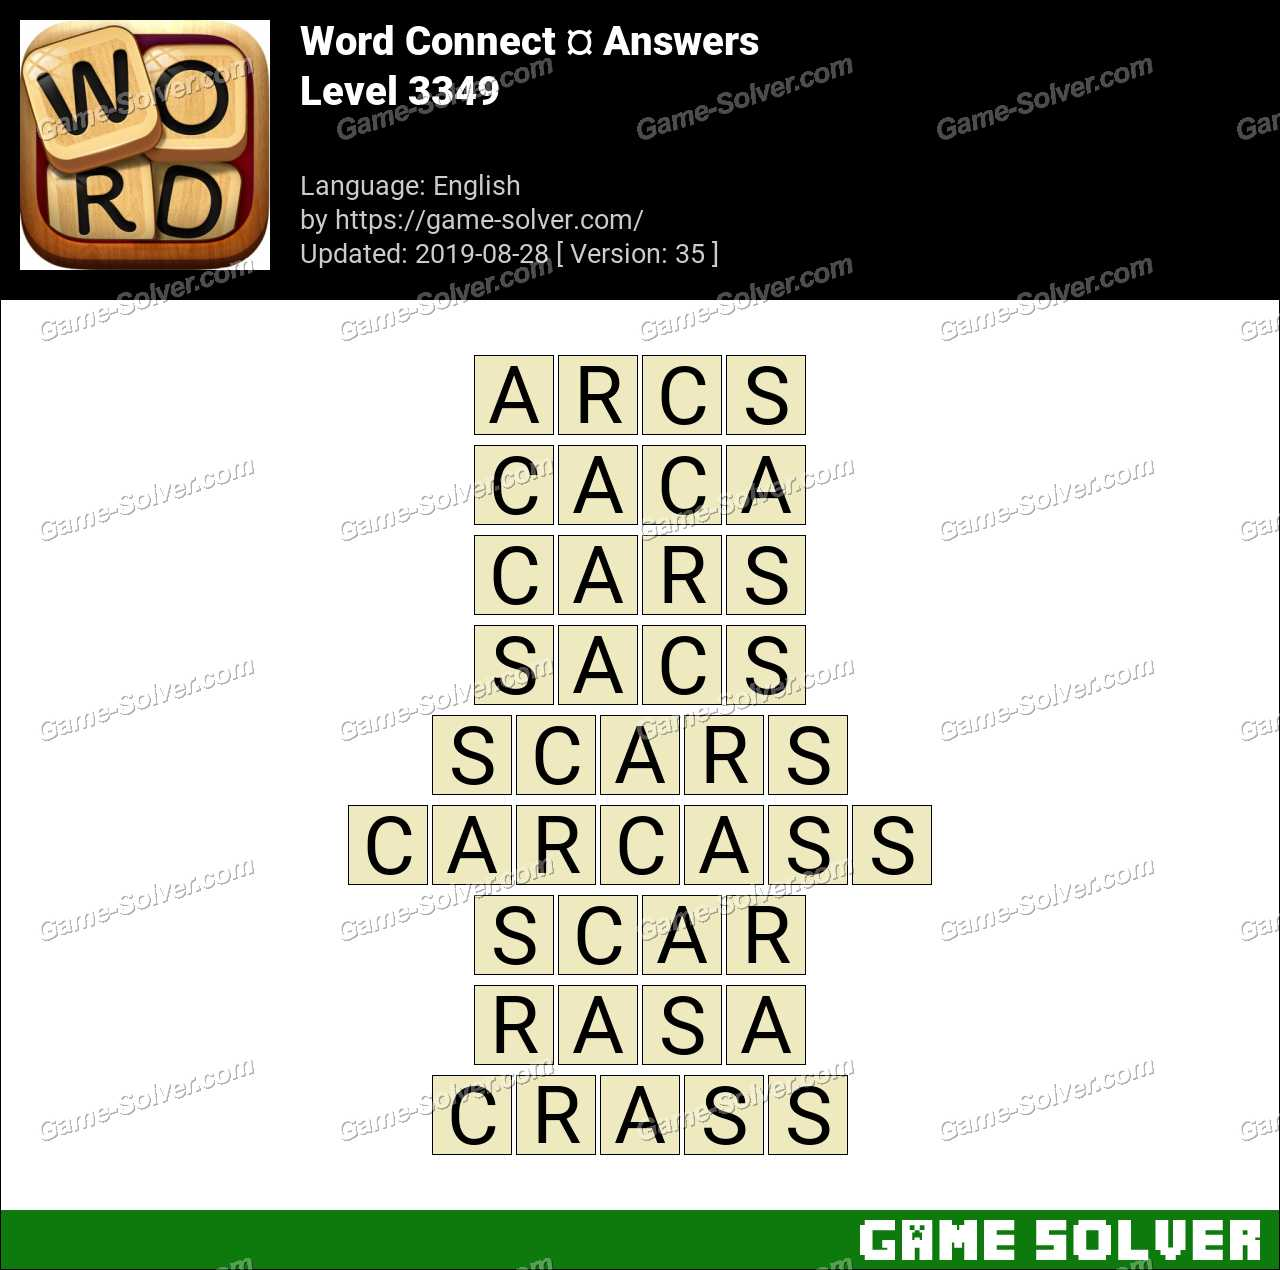 Word Connect Level 3349 Answers